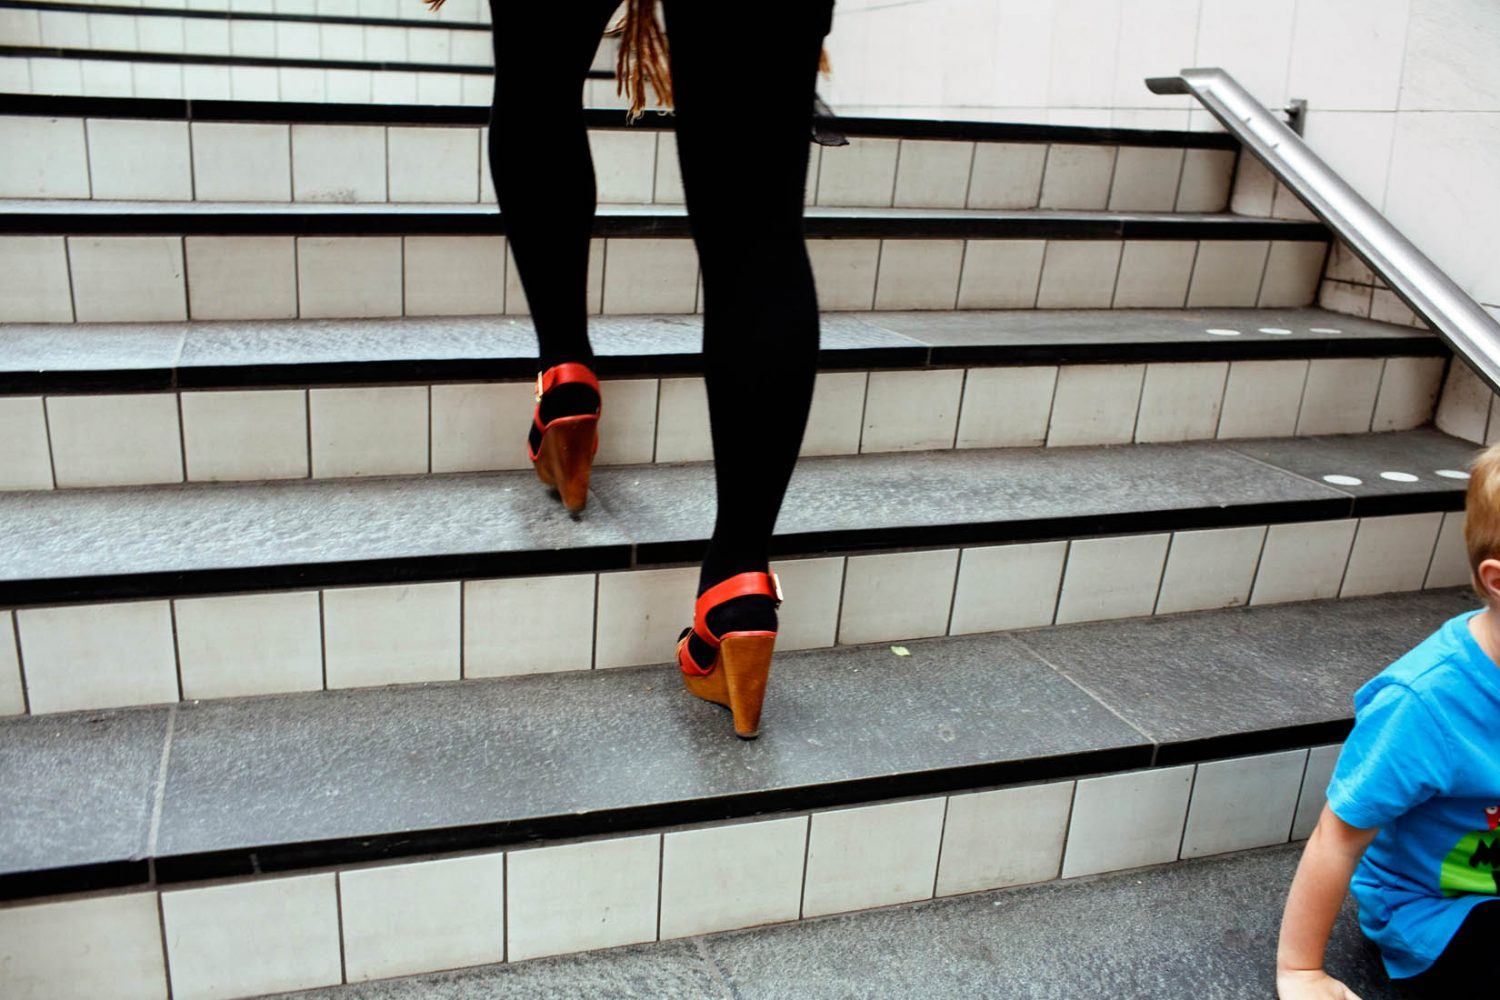 Nederland, Amsterdam, 22-06-2011 Beautiful woman legs running up the stairs at Amstelstation in Amsterdam PHOTO AND COPYRIGHT ROGER CREMERS